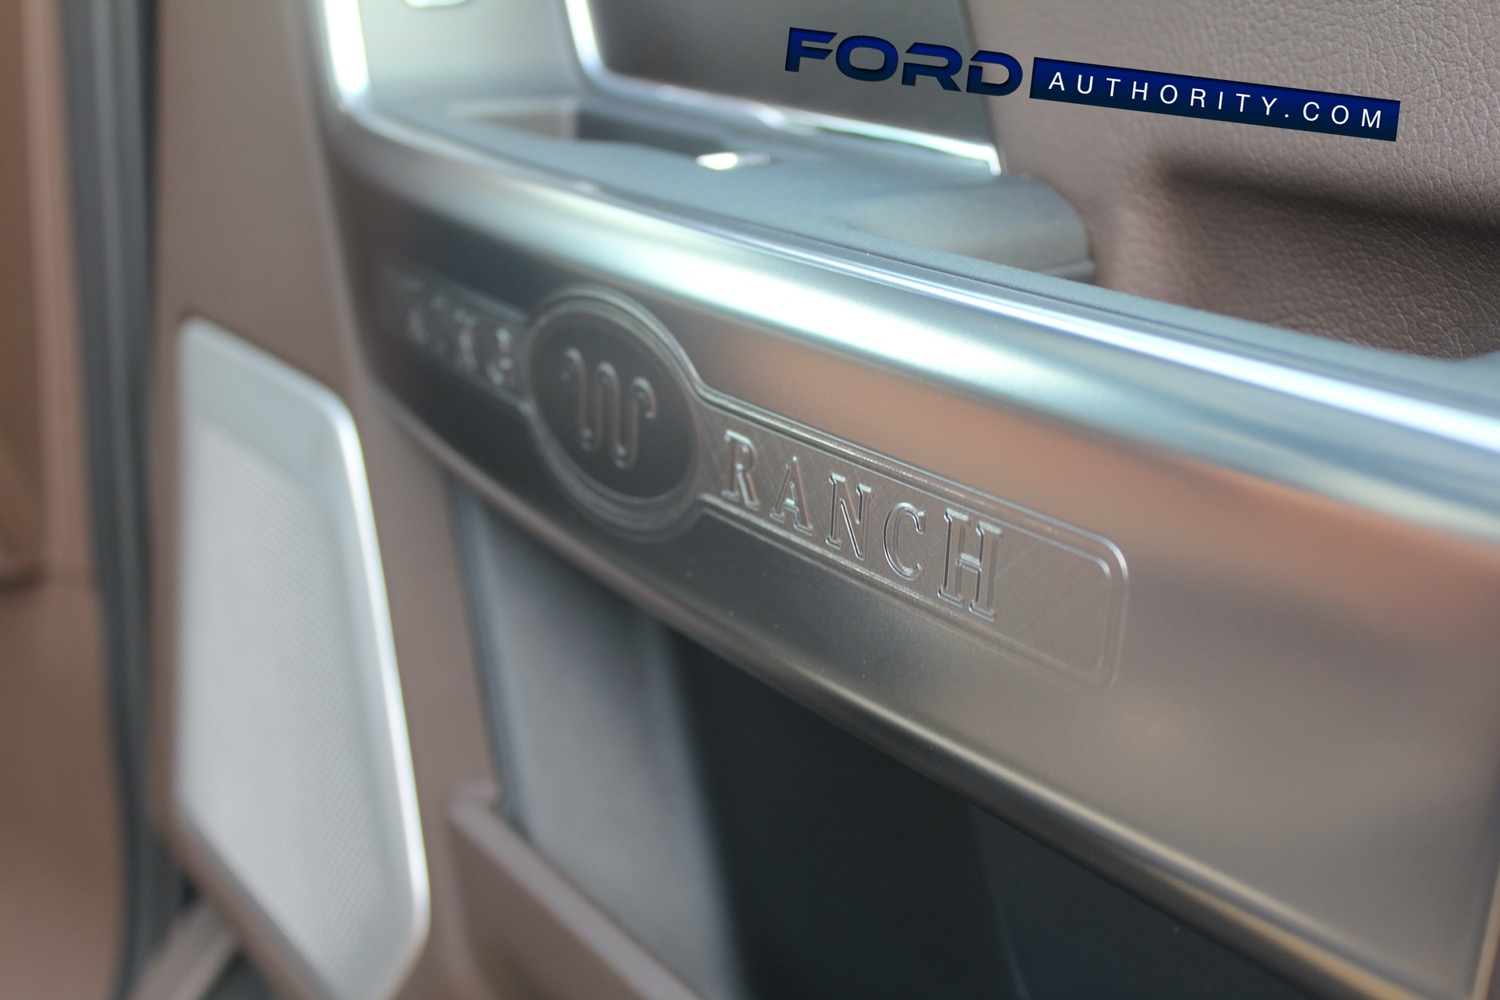 2021-Ford-F-150-King-Ranch-Interior-Front-Row-032-King-Ranch-logo-driver-side-door-panel.jpg